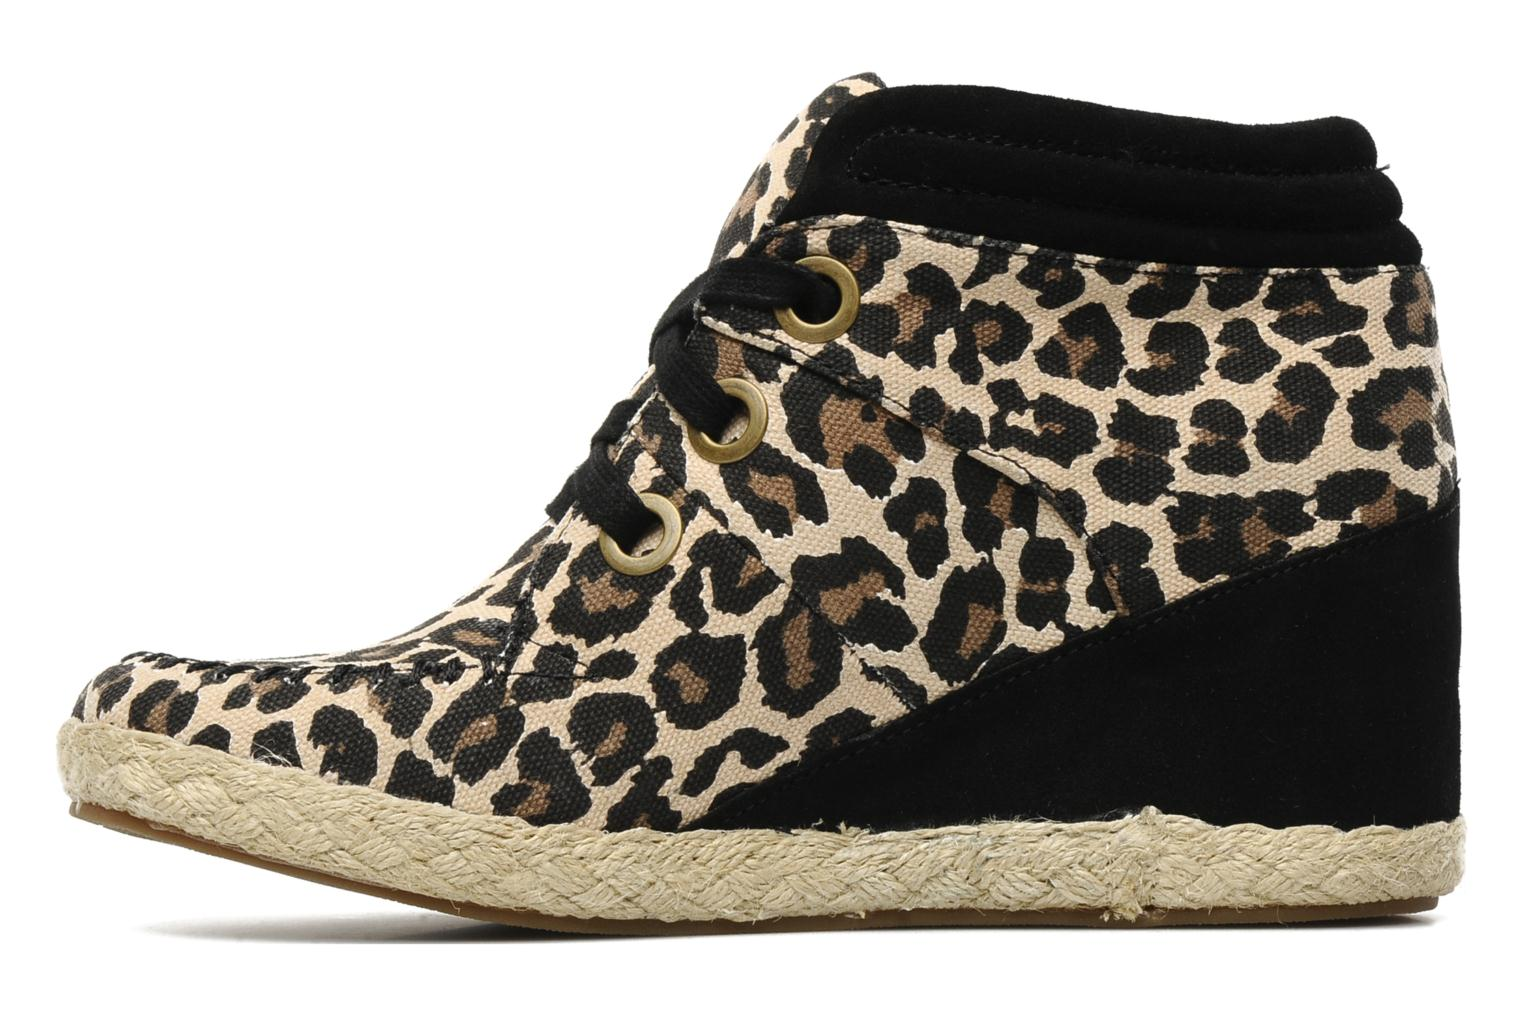 Spleen Sneaker Leopard Natural/Black